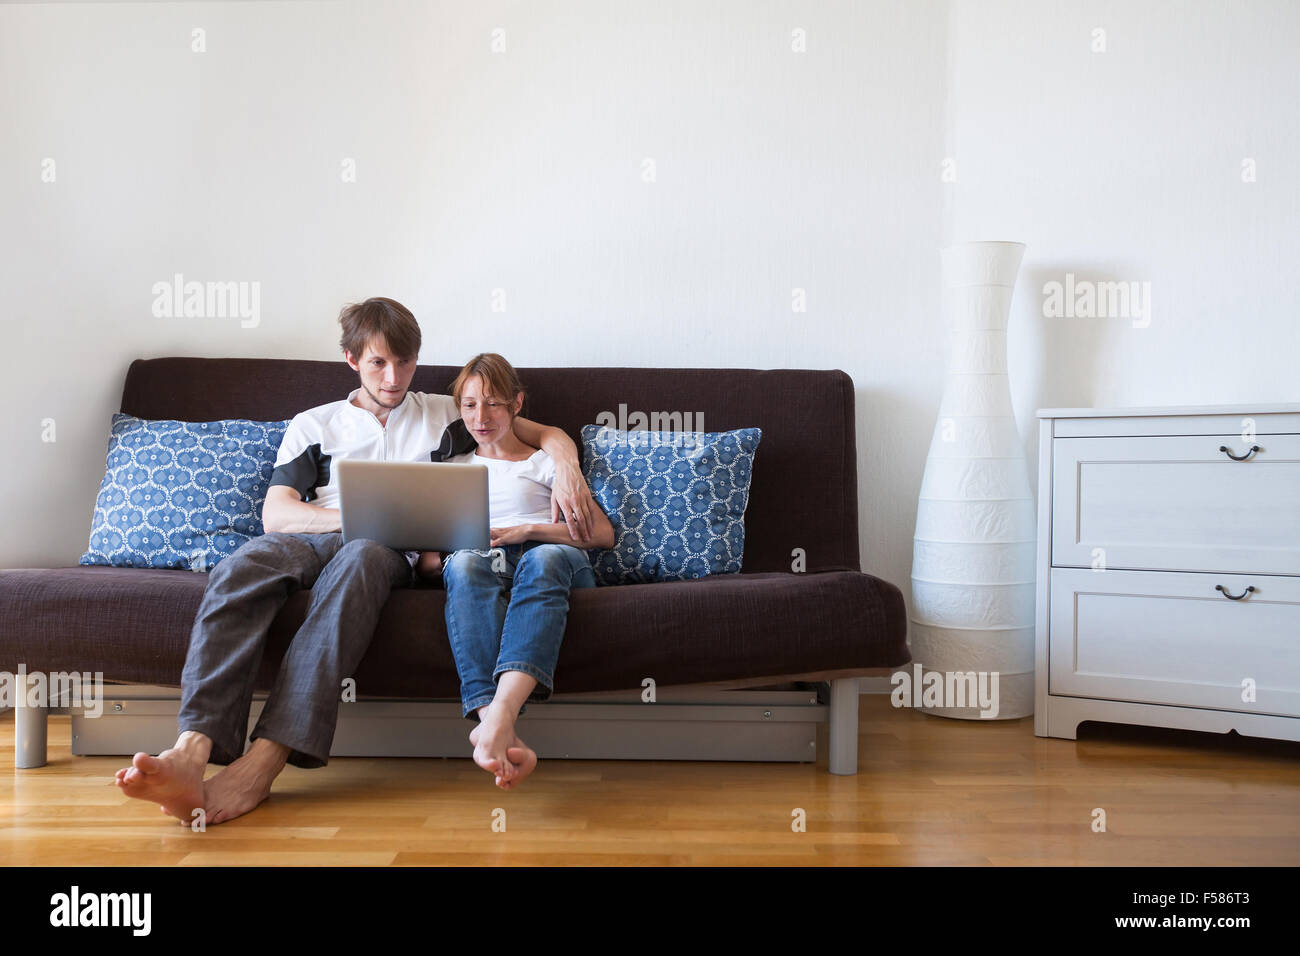 young family using laptop at home, couple on the couch with computer Stock Photo